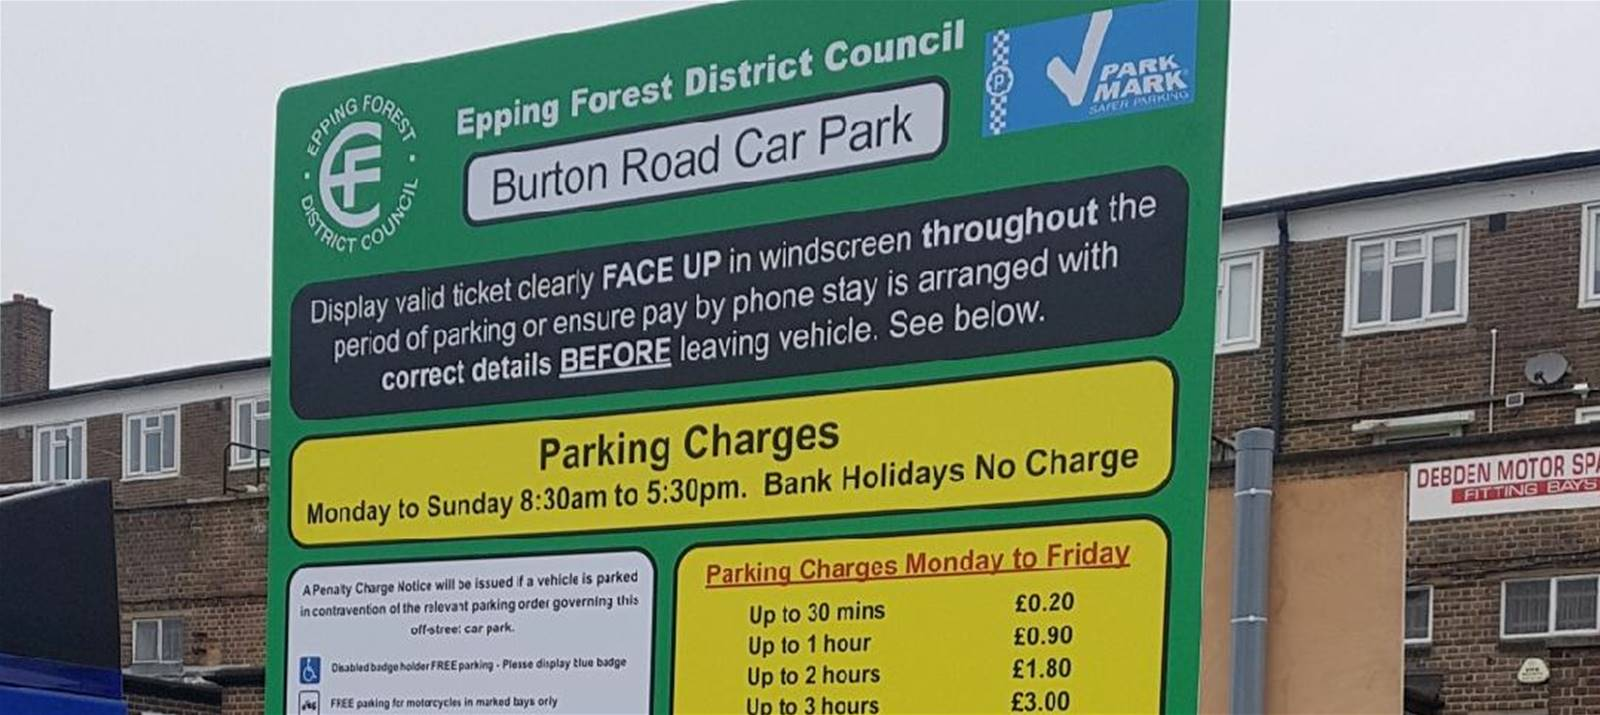 One of 43 Parking Tariff Boards replaced for Epping Forest District Council